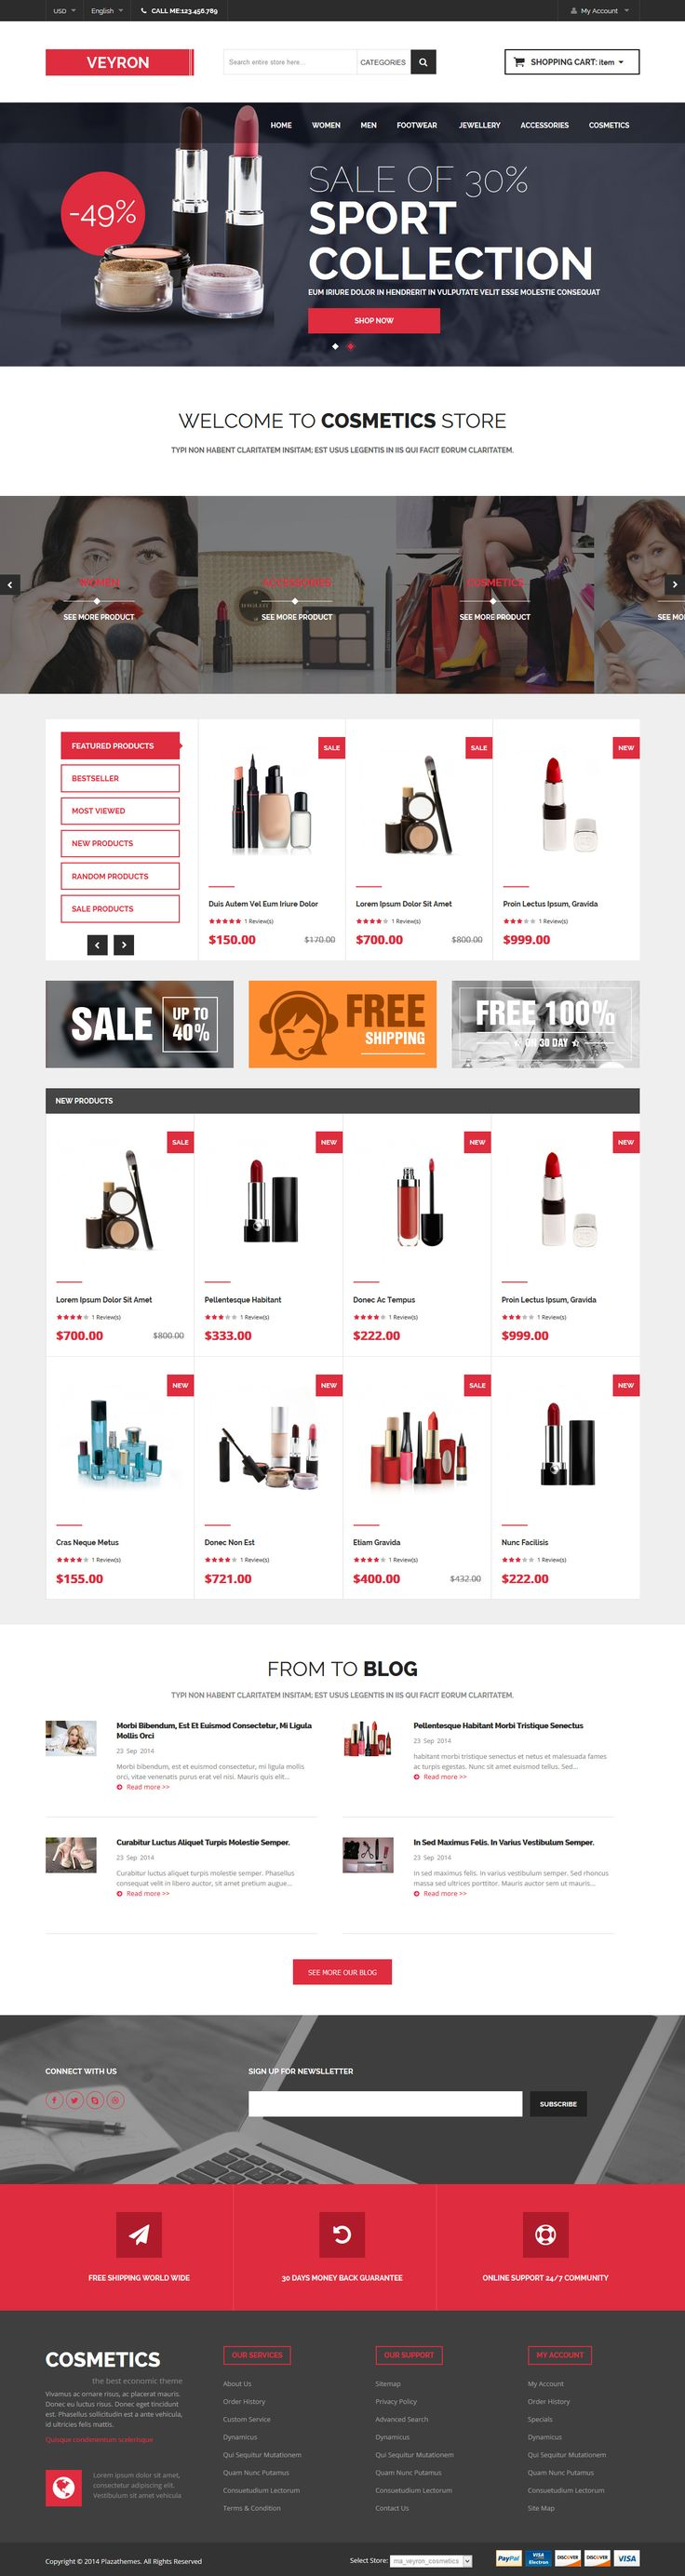 339 best Magento Themes & Templates images on Pinterest ...